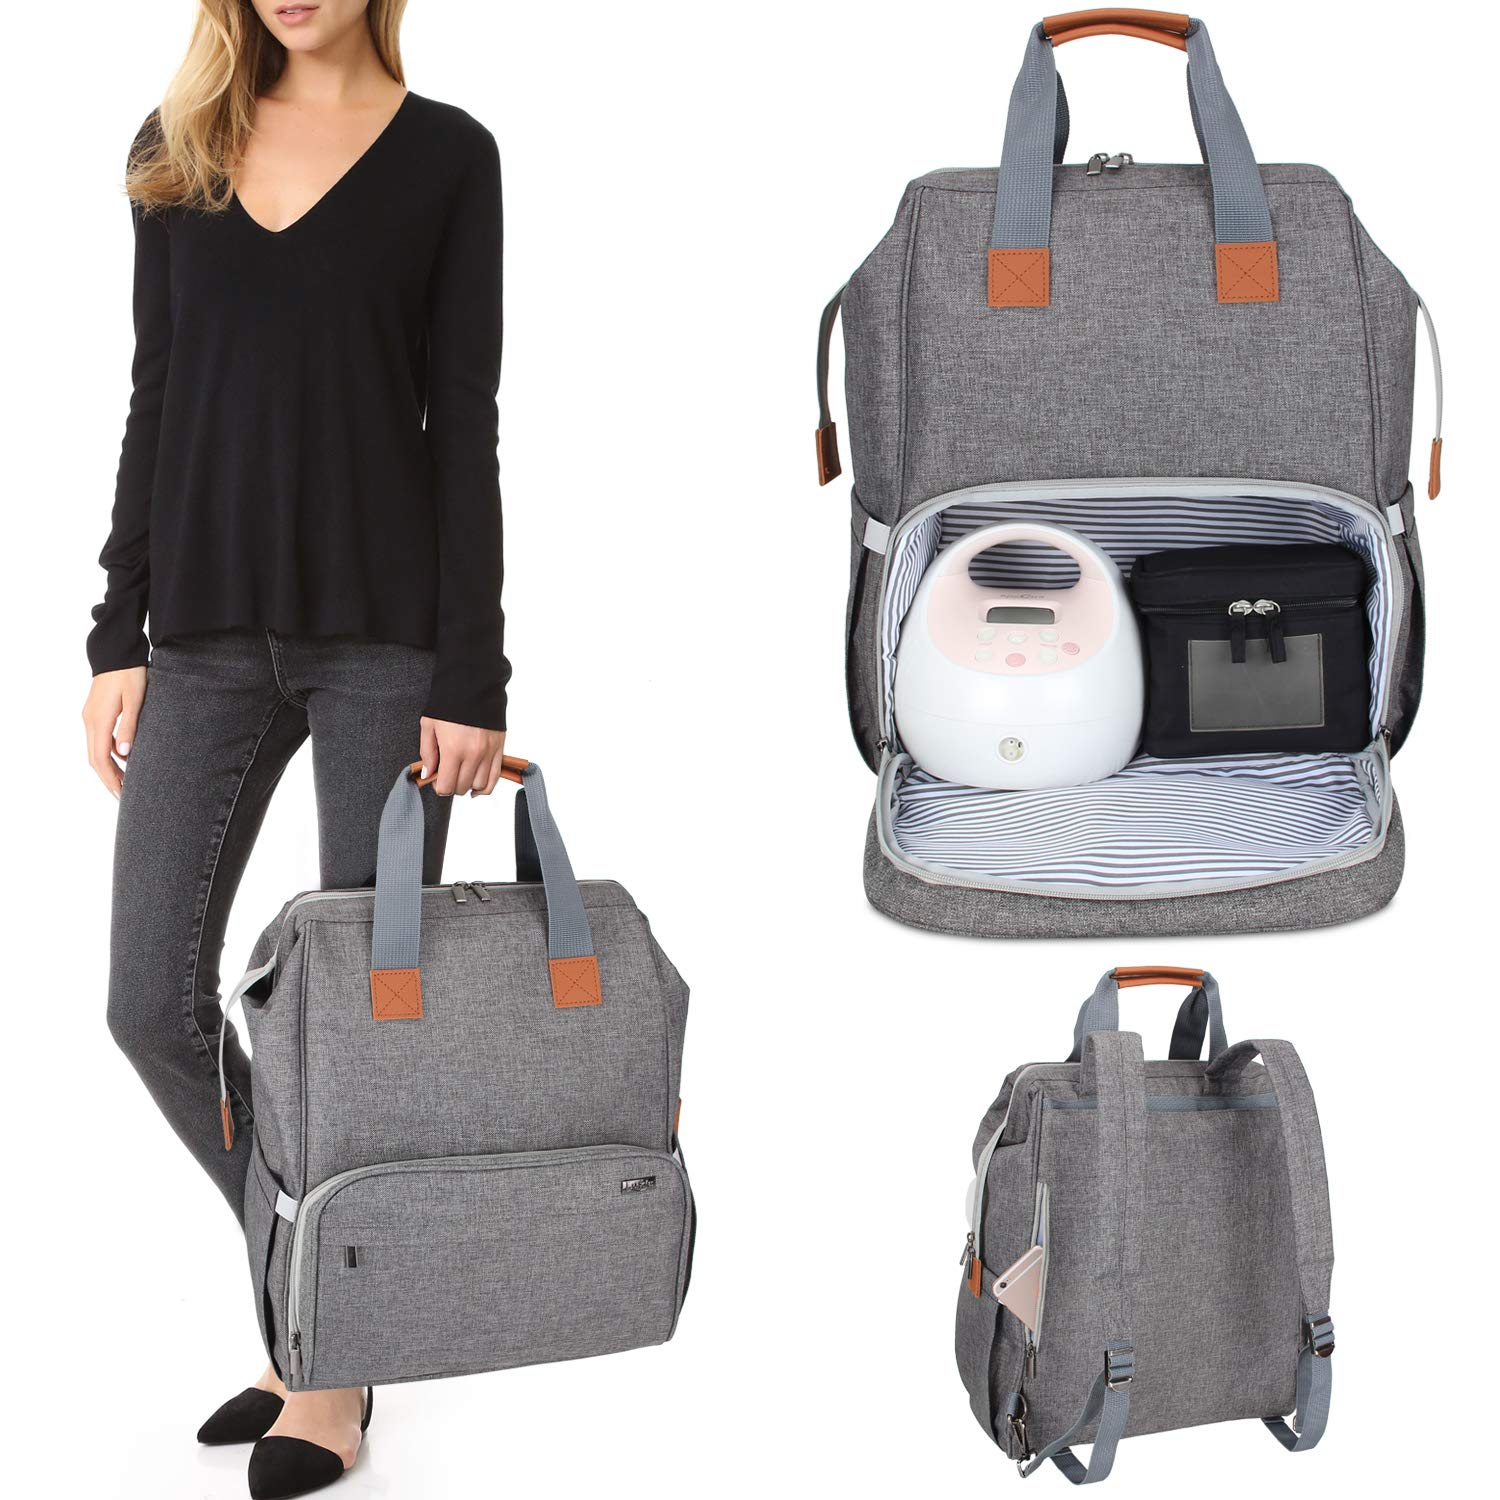 Luxja Breast Pump Bag with Compartments for Cooler Bag and Laptop, Breast Pump Backpack with 2 Options for Wearing (Fits Most Major Breast Pump, Suitable for Working Mothers), Gray by LUXJA